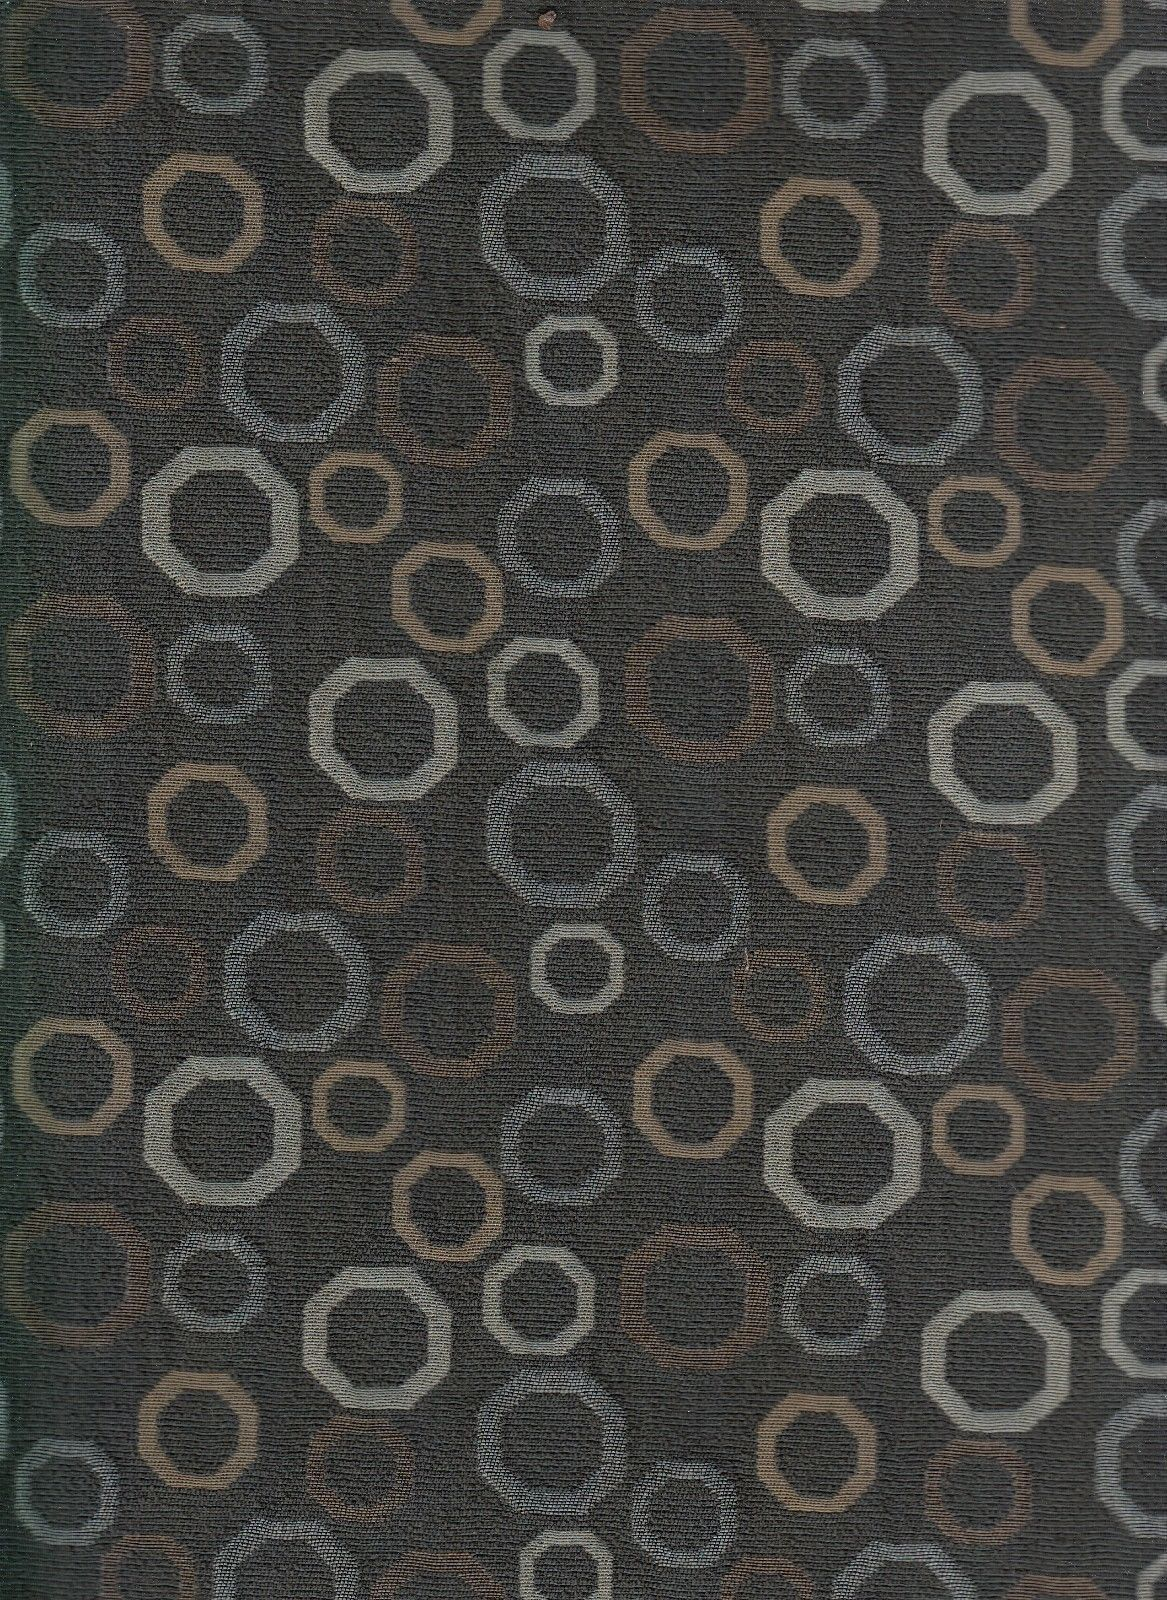 7 yards Mokum Upholstery Fabric Stop Geometric Charcoal 7171-083 RC6